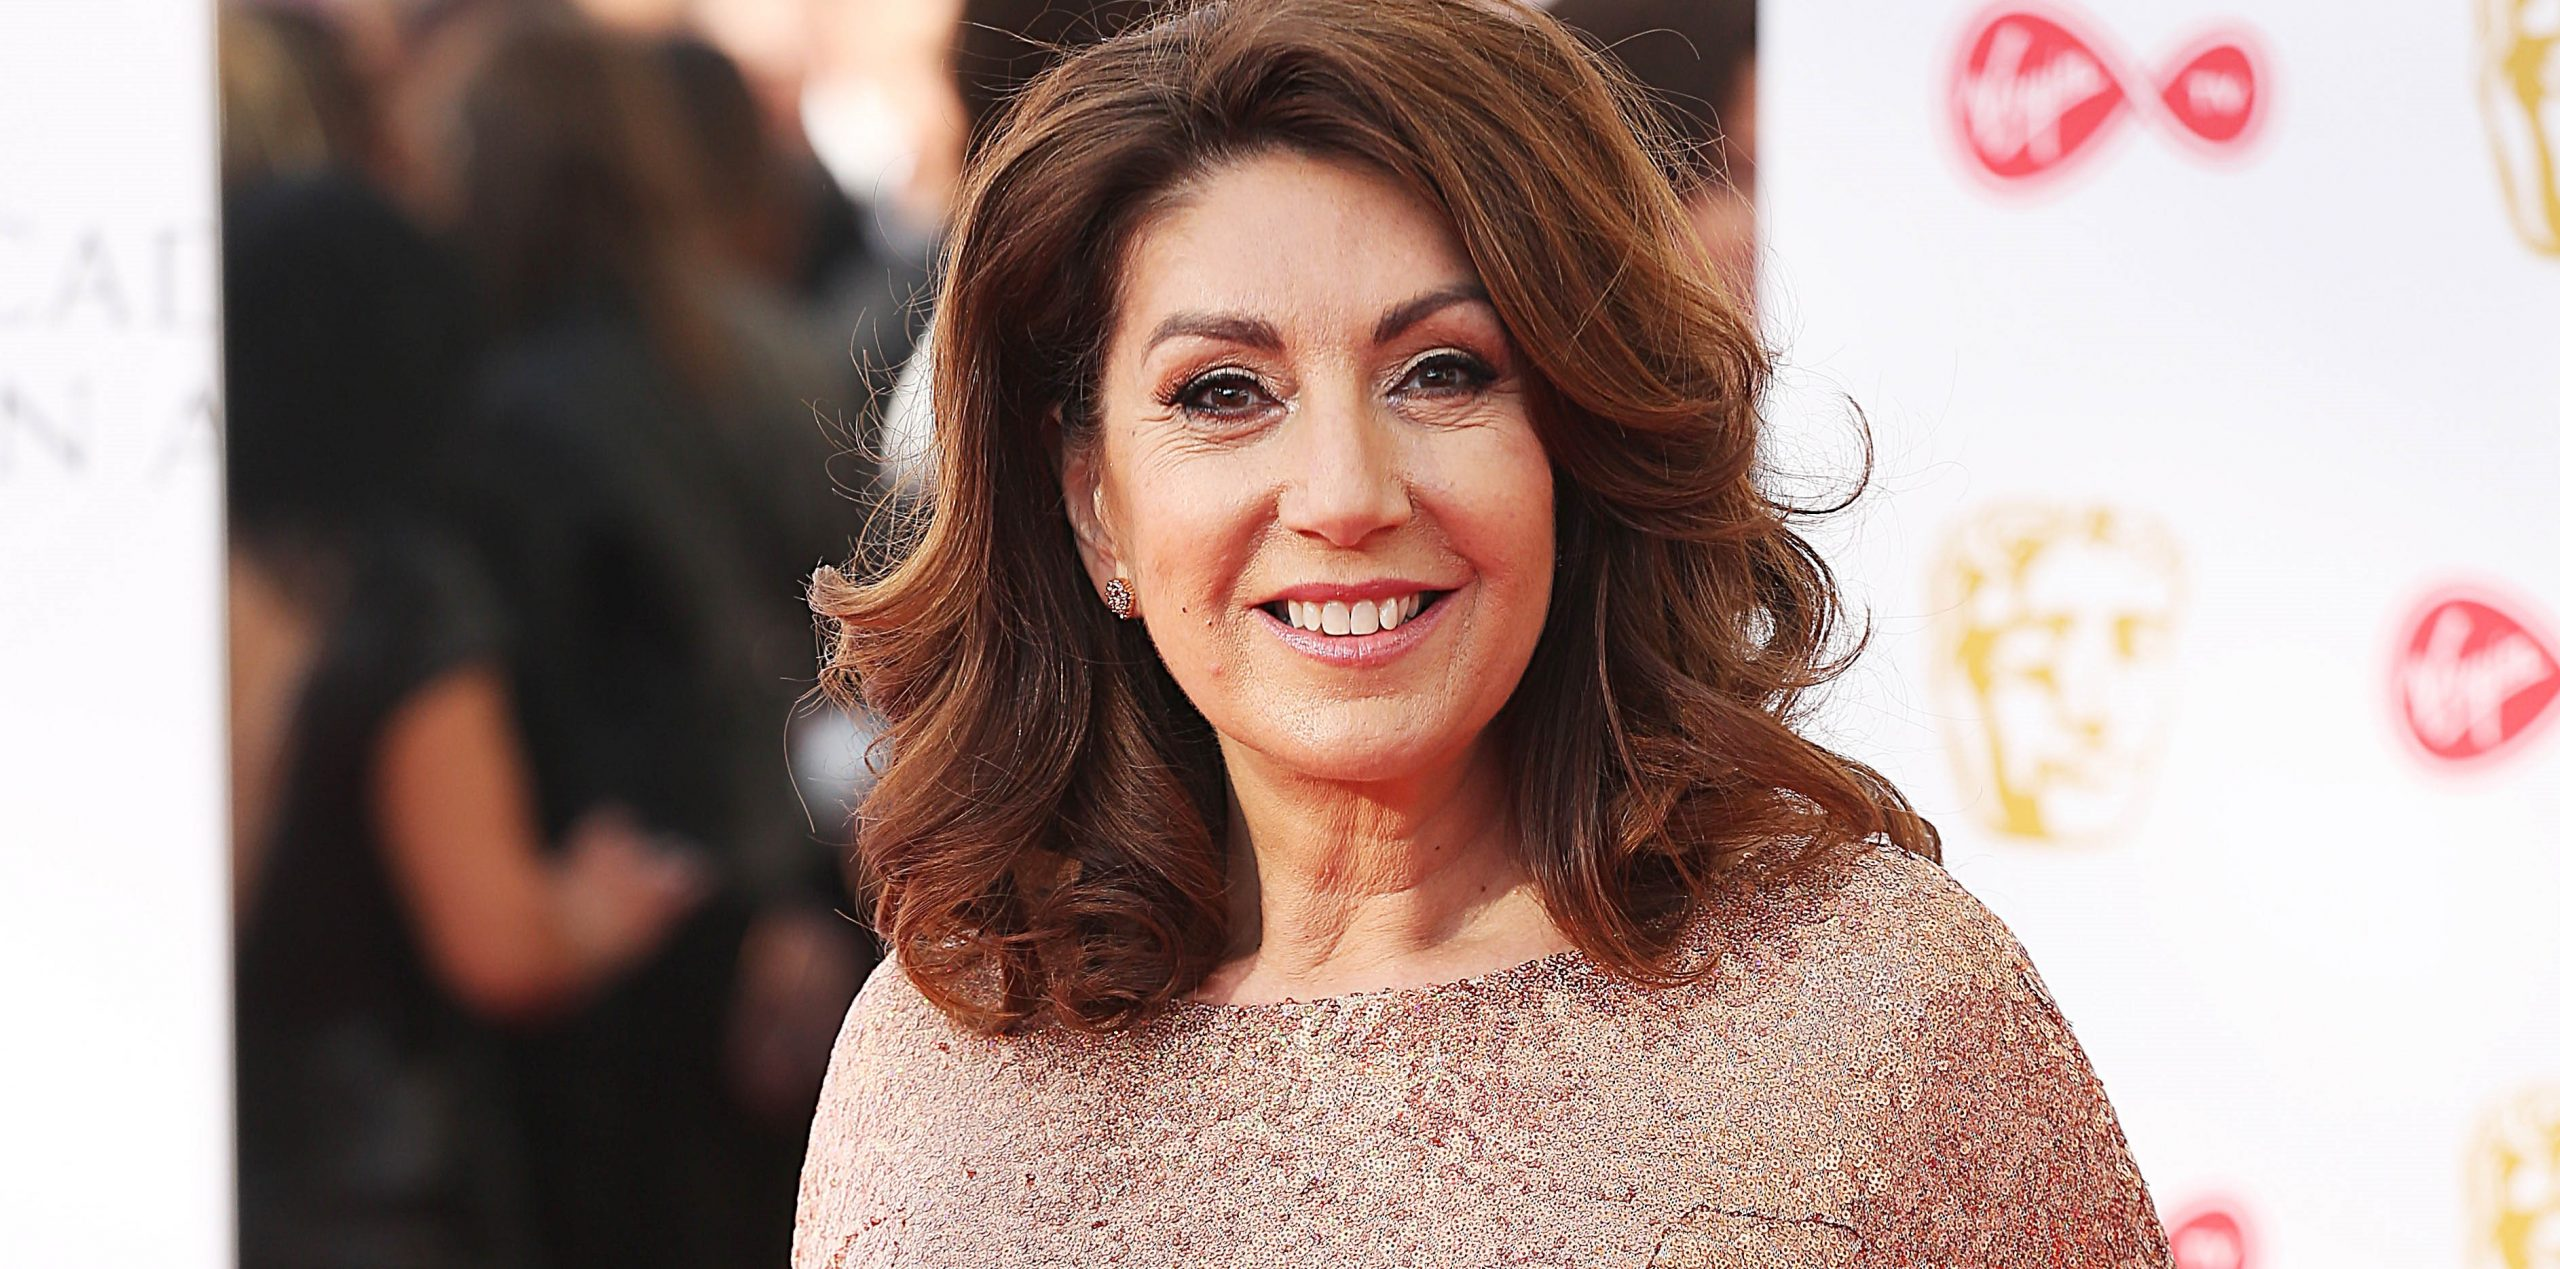 Jane McDonald quits Channel 5 to 'spend more time in the UK'